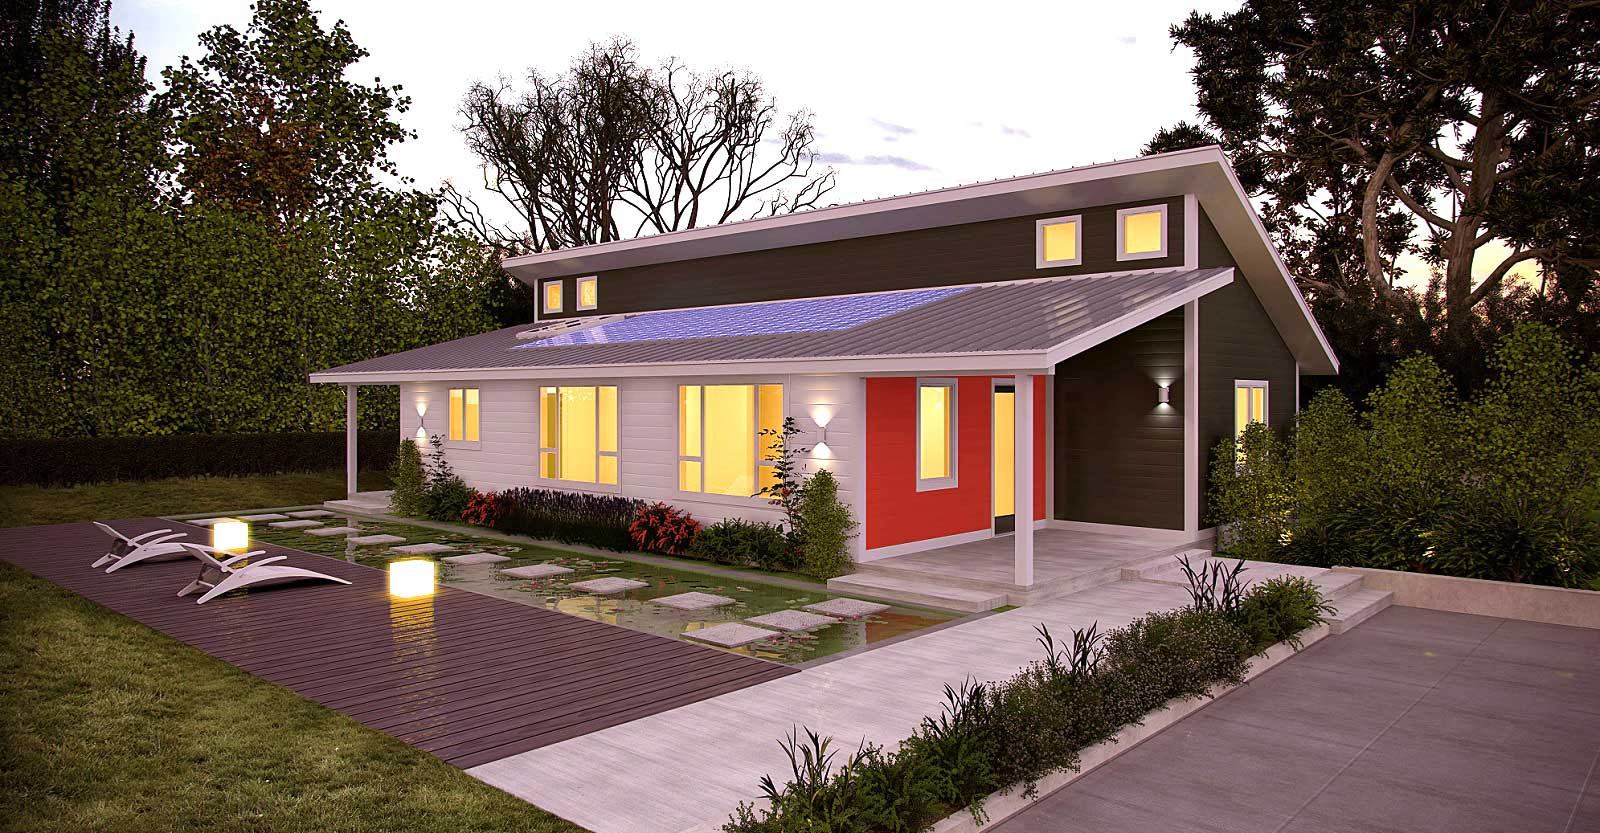 Prefab Zero Energy Homes & Prefab Zero Energy Homes - Zero Energy Project